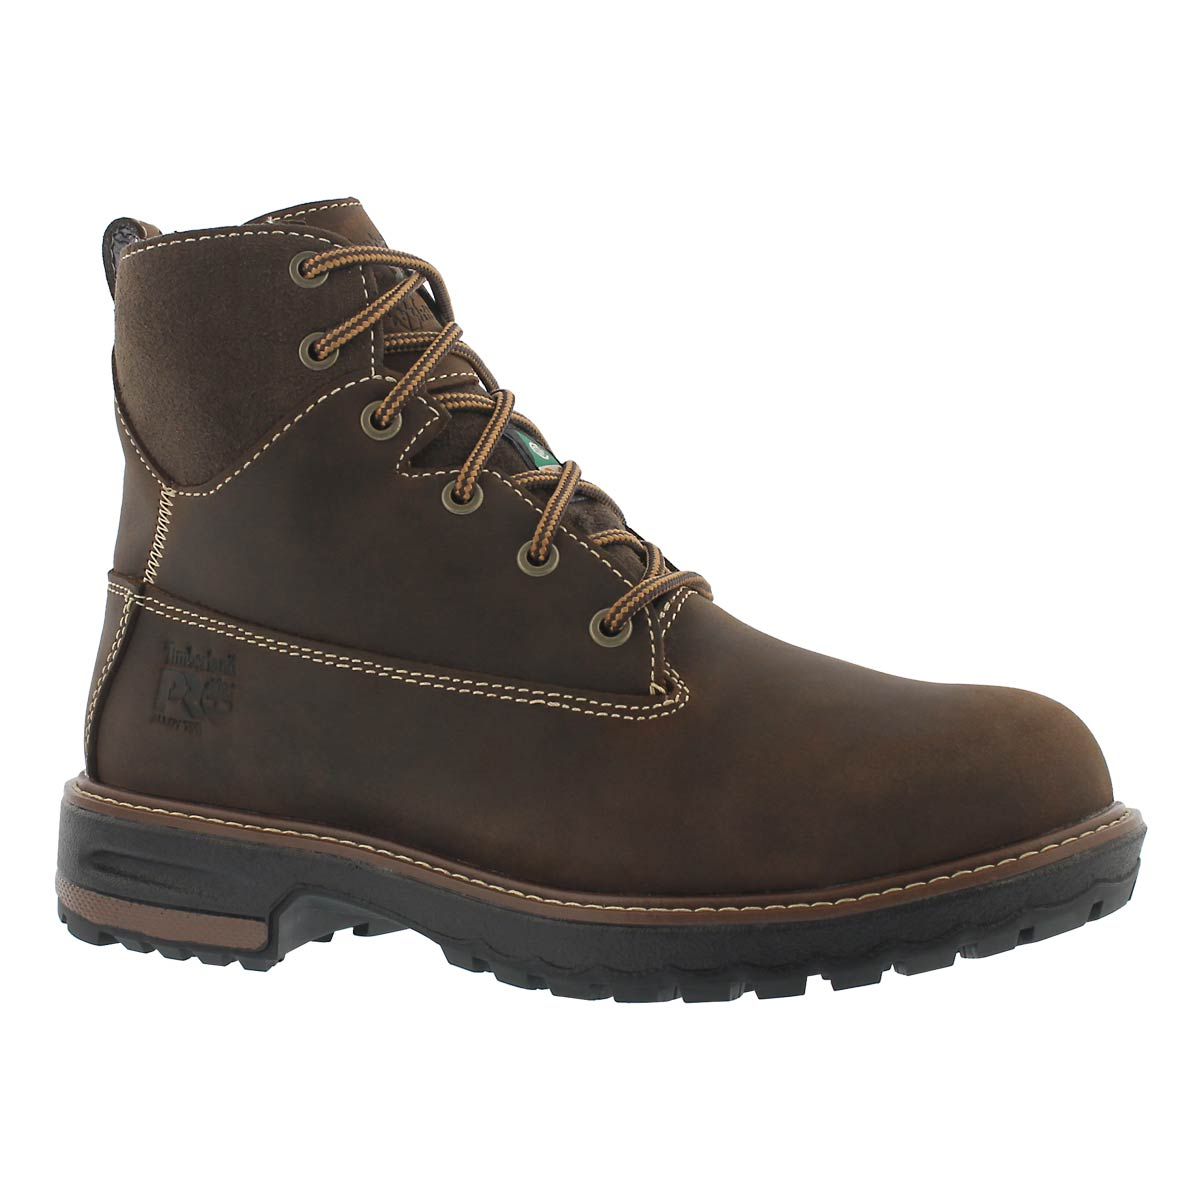 "Women's 6"" HIGHTOWER kaffe CSA boots"